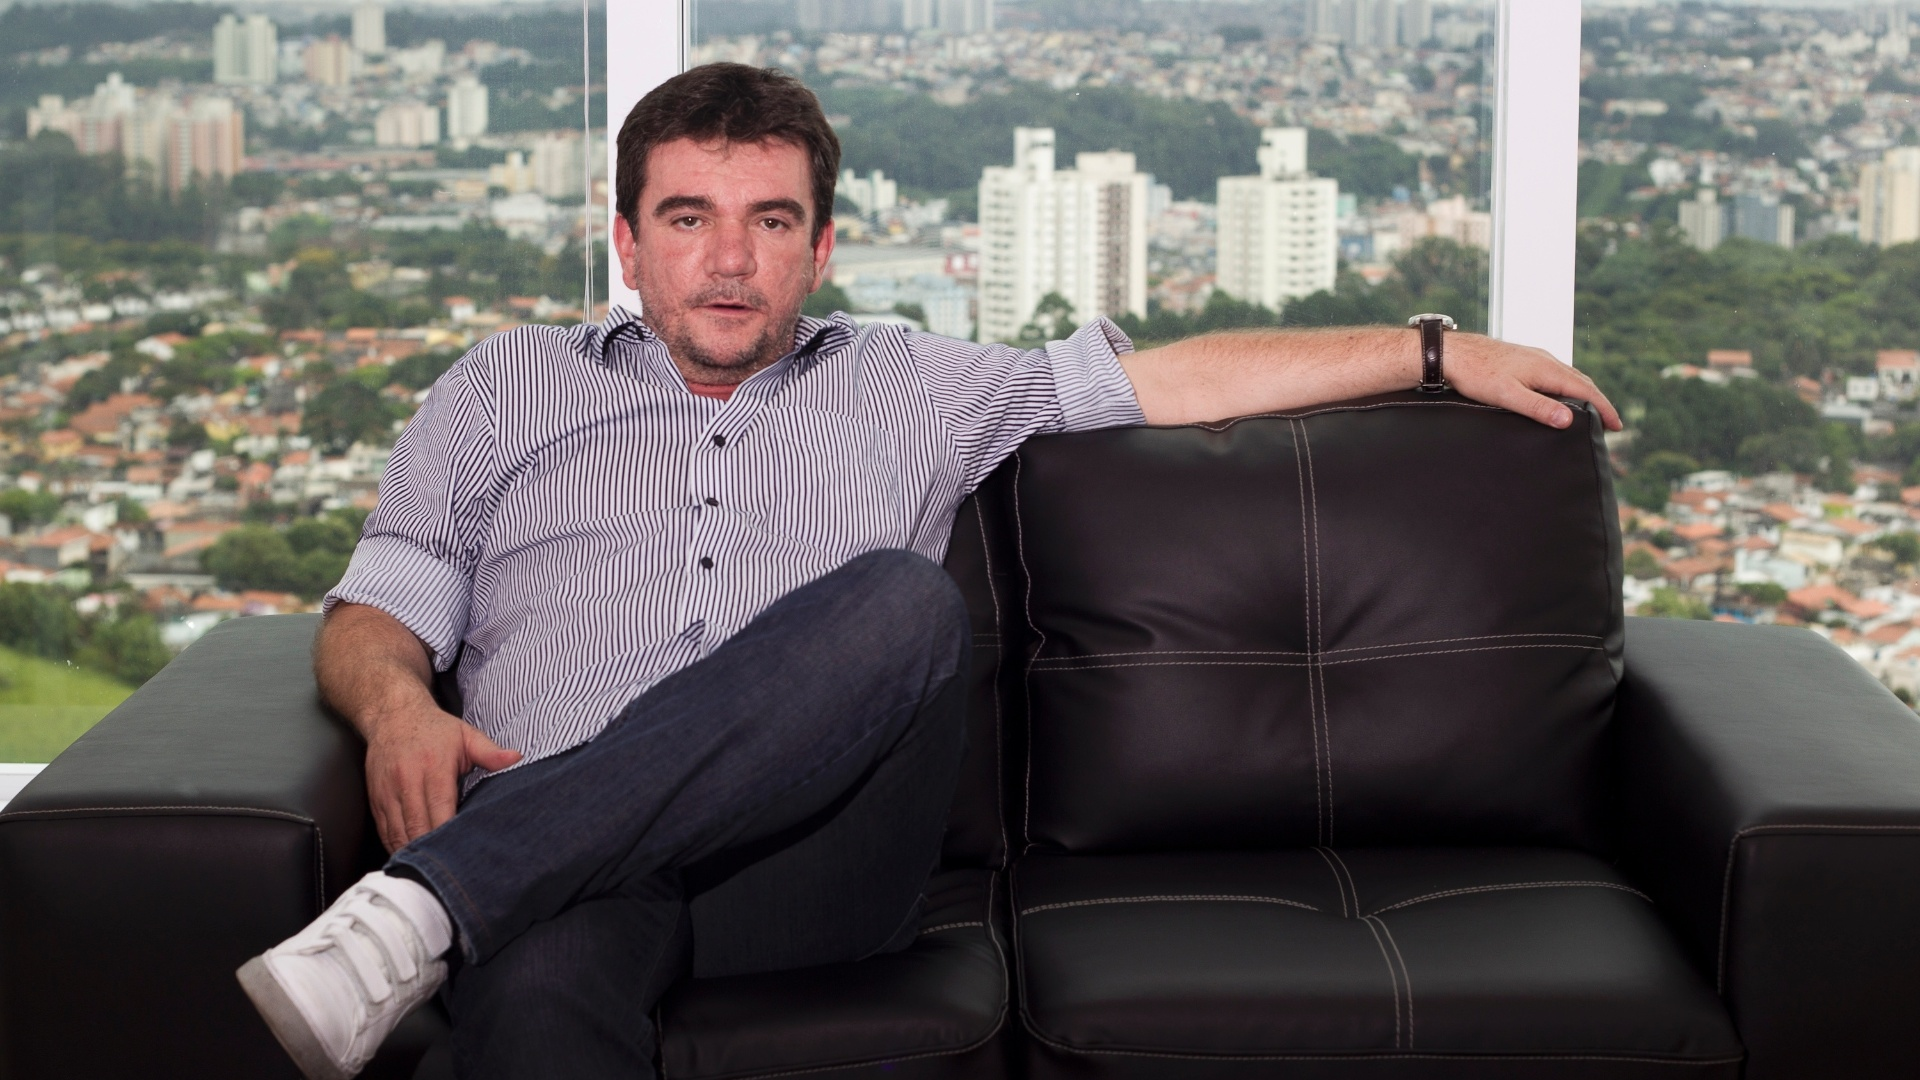 14jan2013 - Andrés Sanchez, ex-presidente do Corinthians